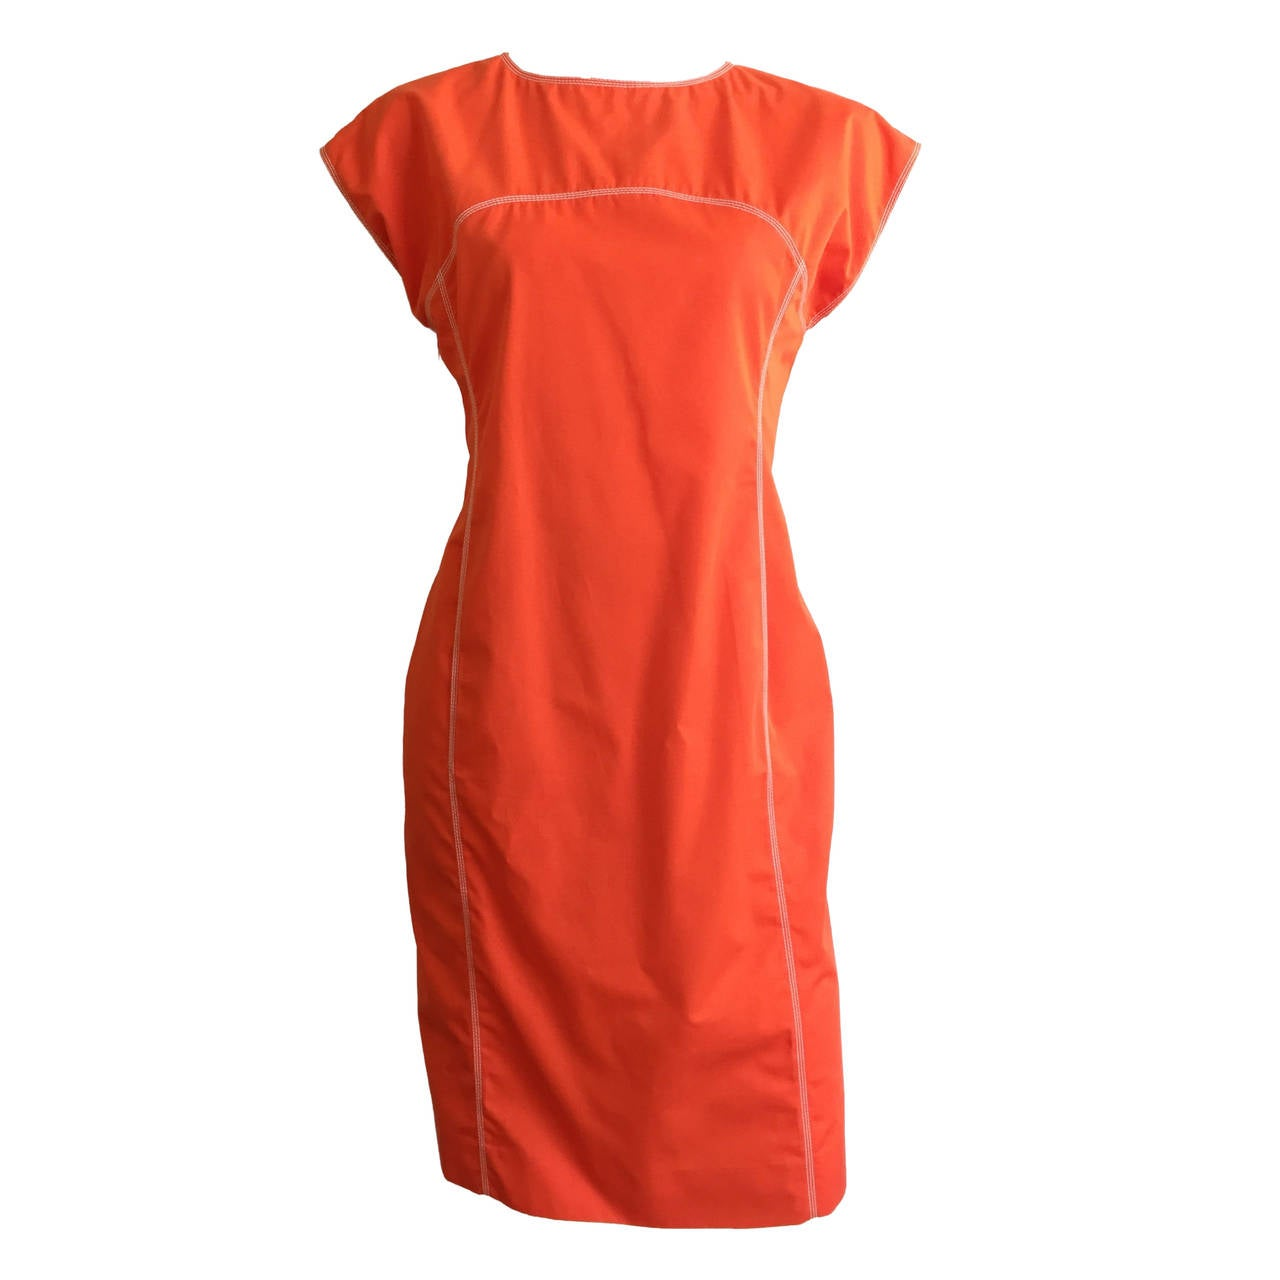 Courreges Paris Dress With Pockets Size 8, 1980s For Sale